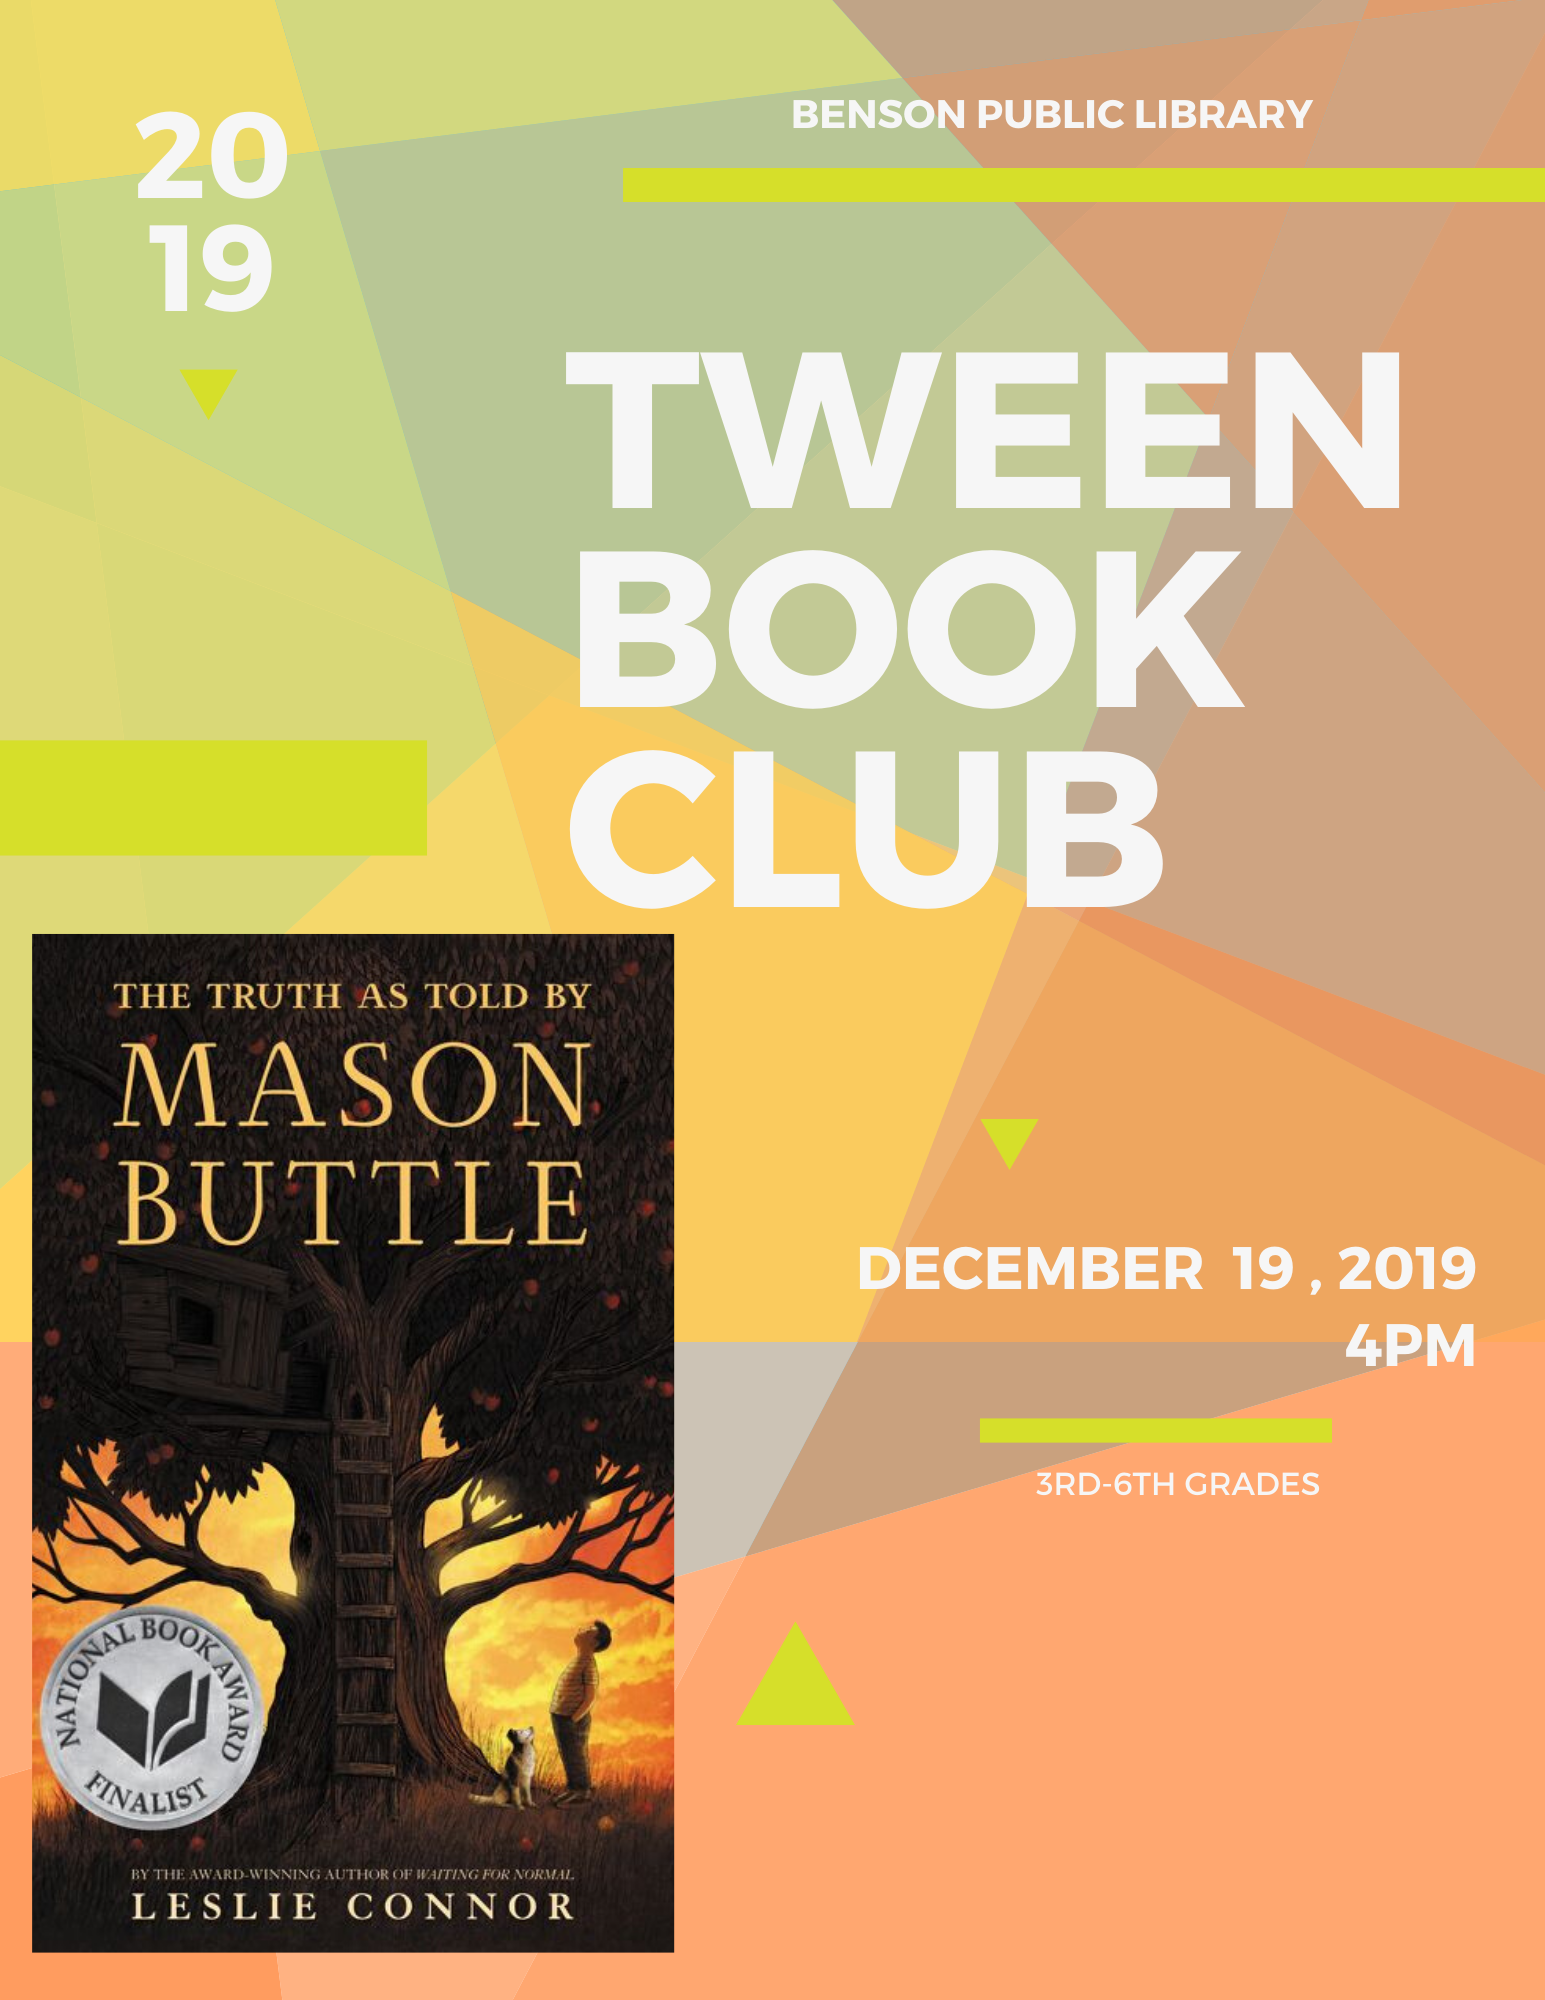 Our tween book club will meet on Thursday, December 19 at 4 pm. Copies will be available to pick up that day.